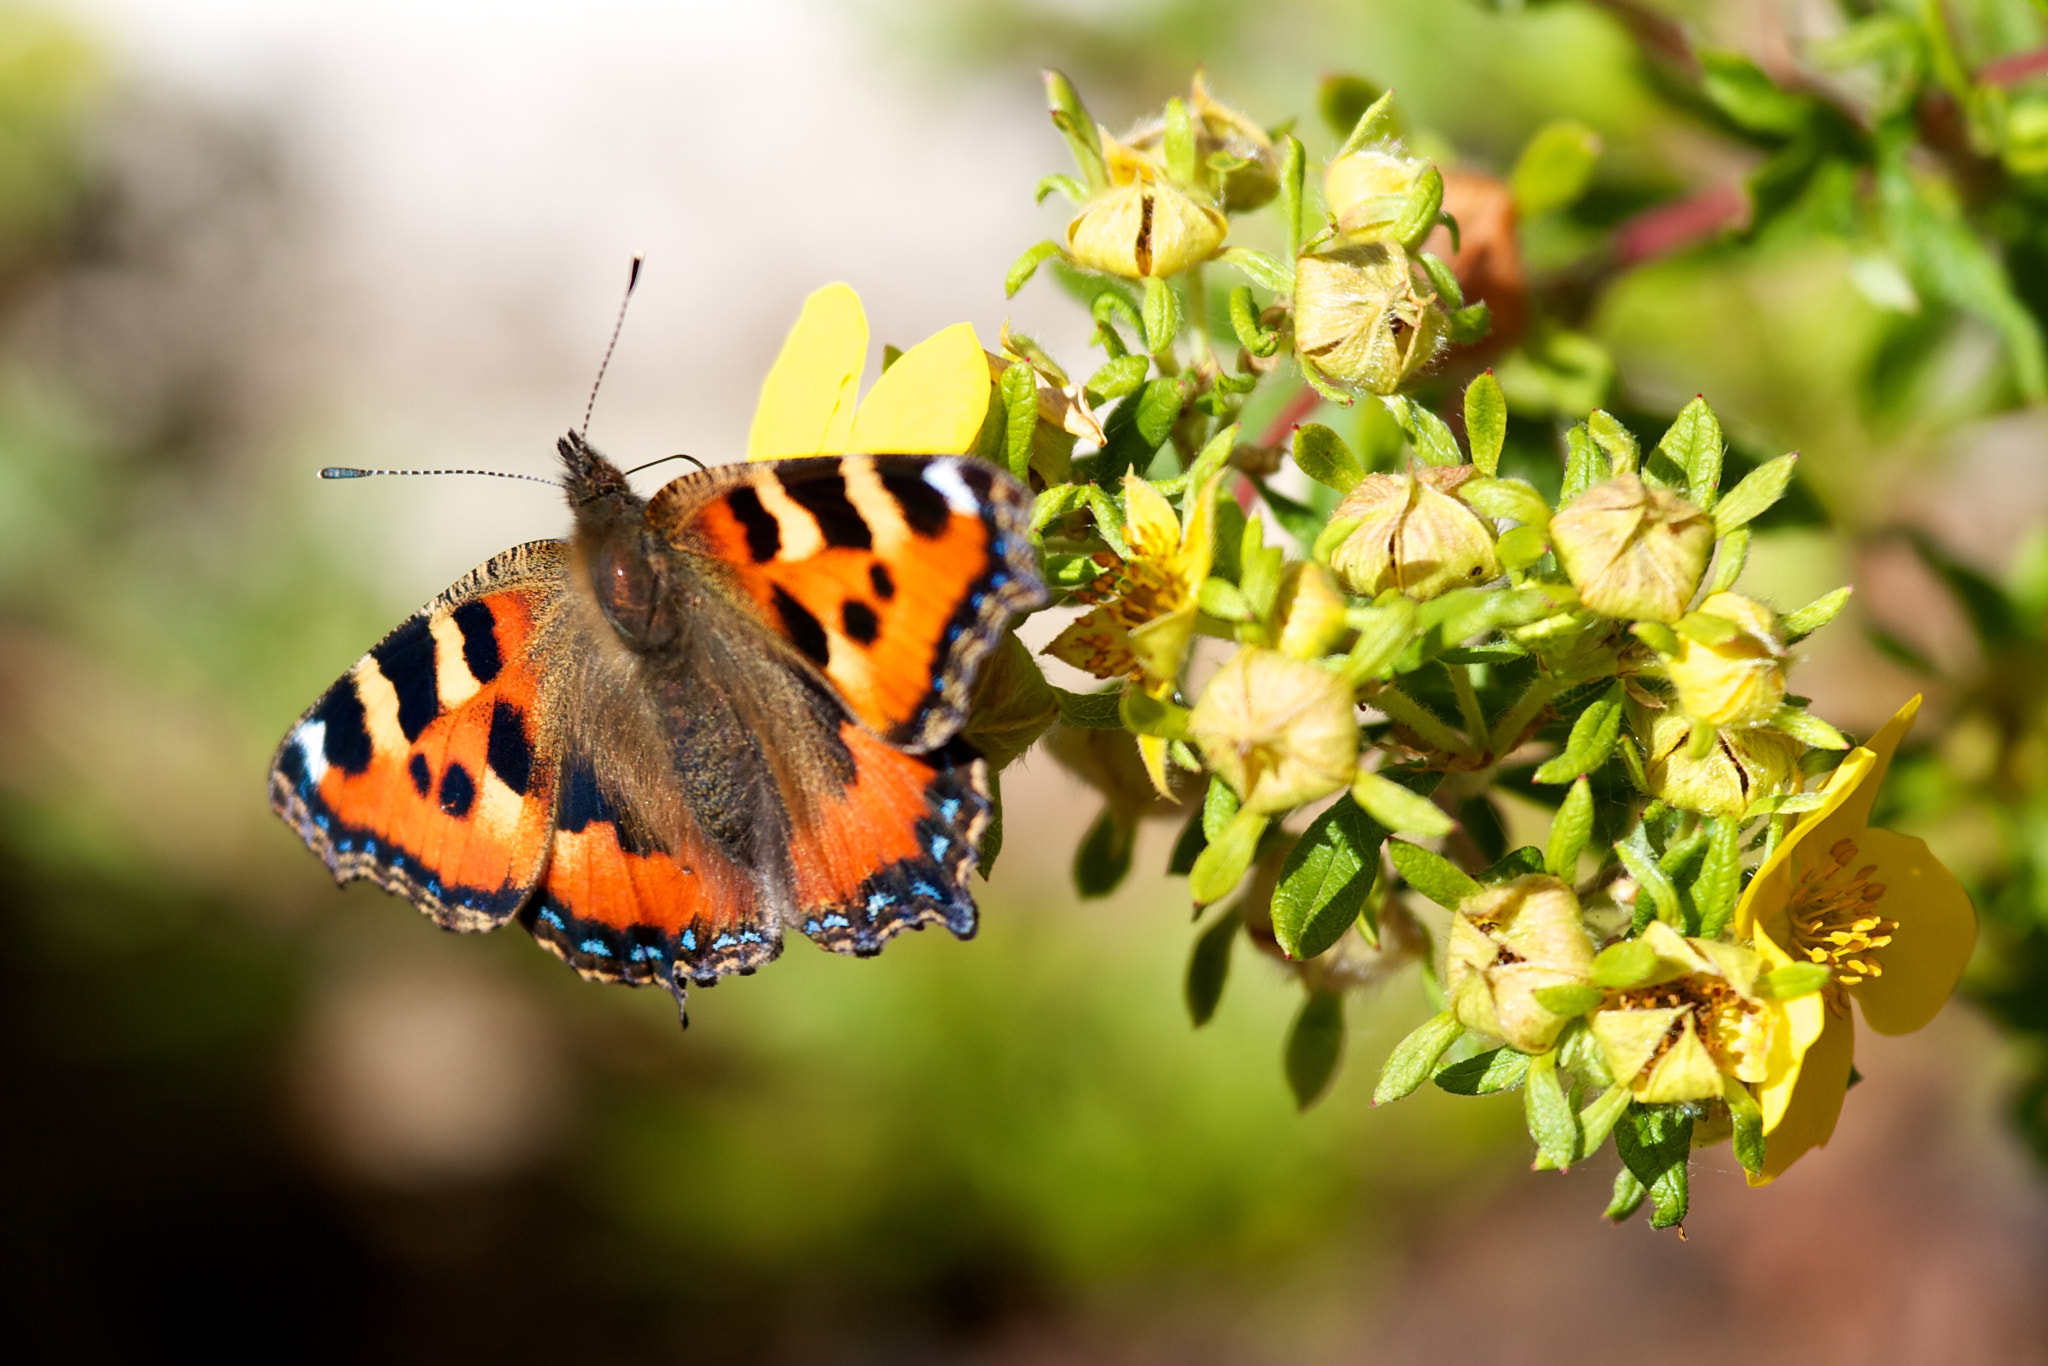 Photograph Tortoiseshell Butterfly by Morgan Kan on 500px